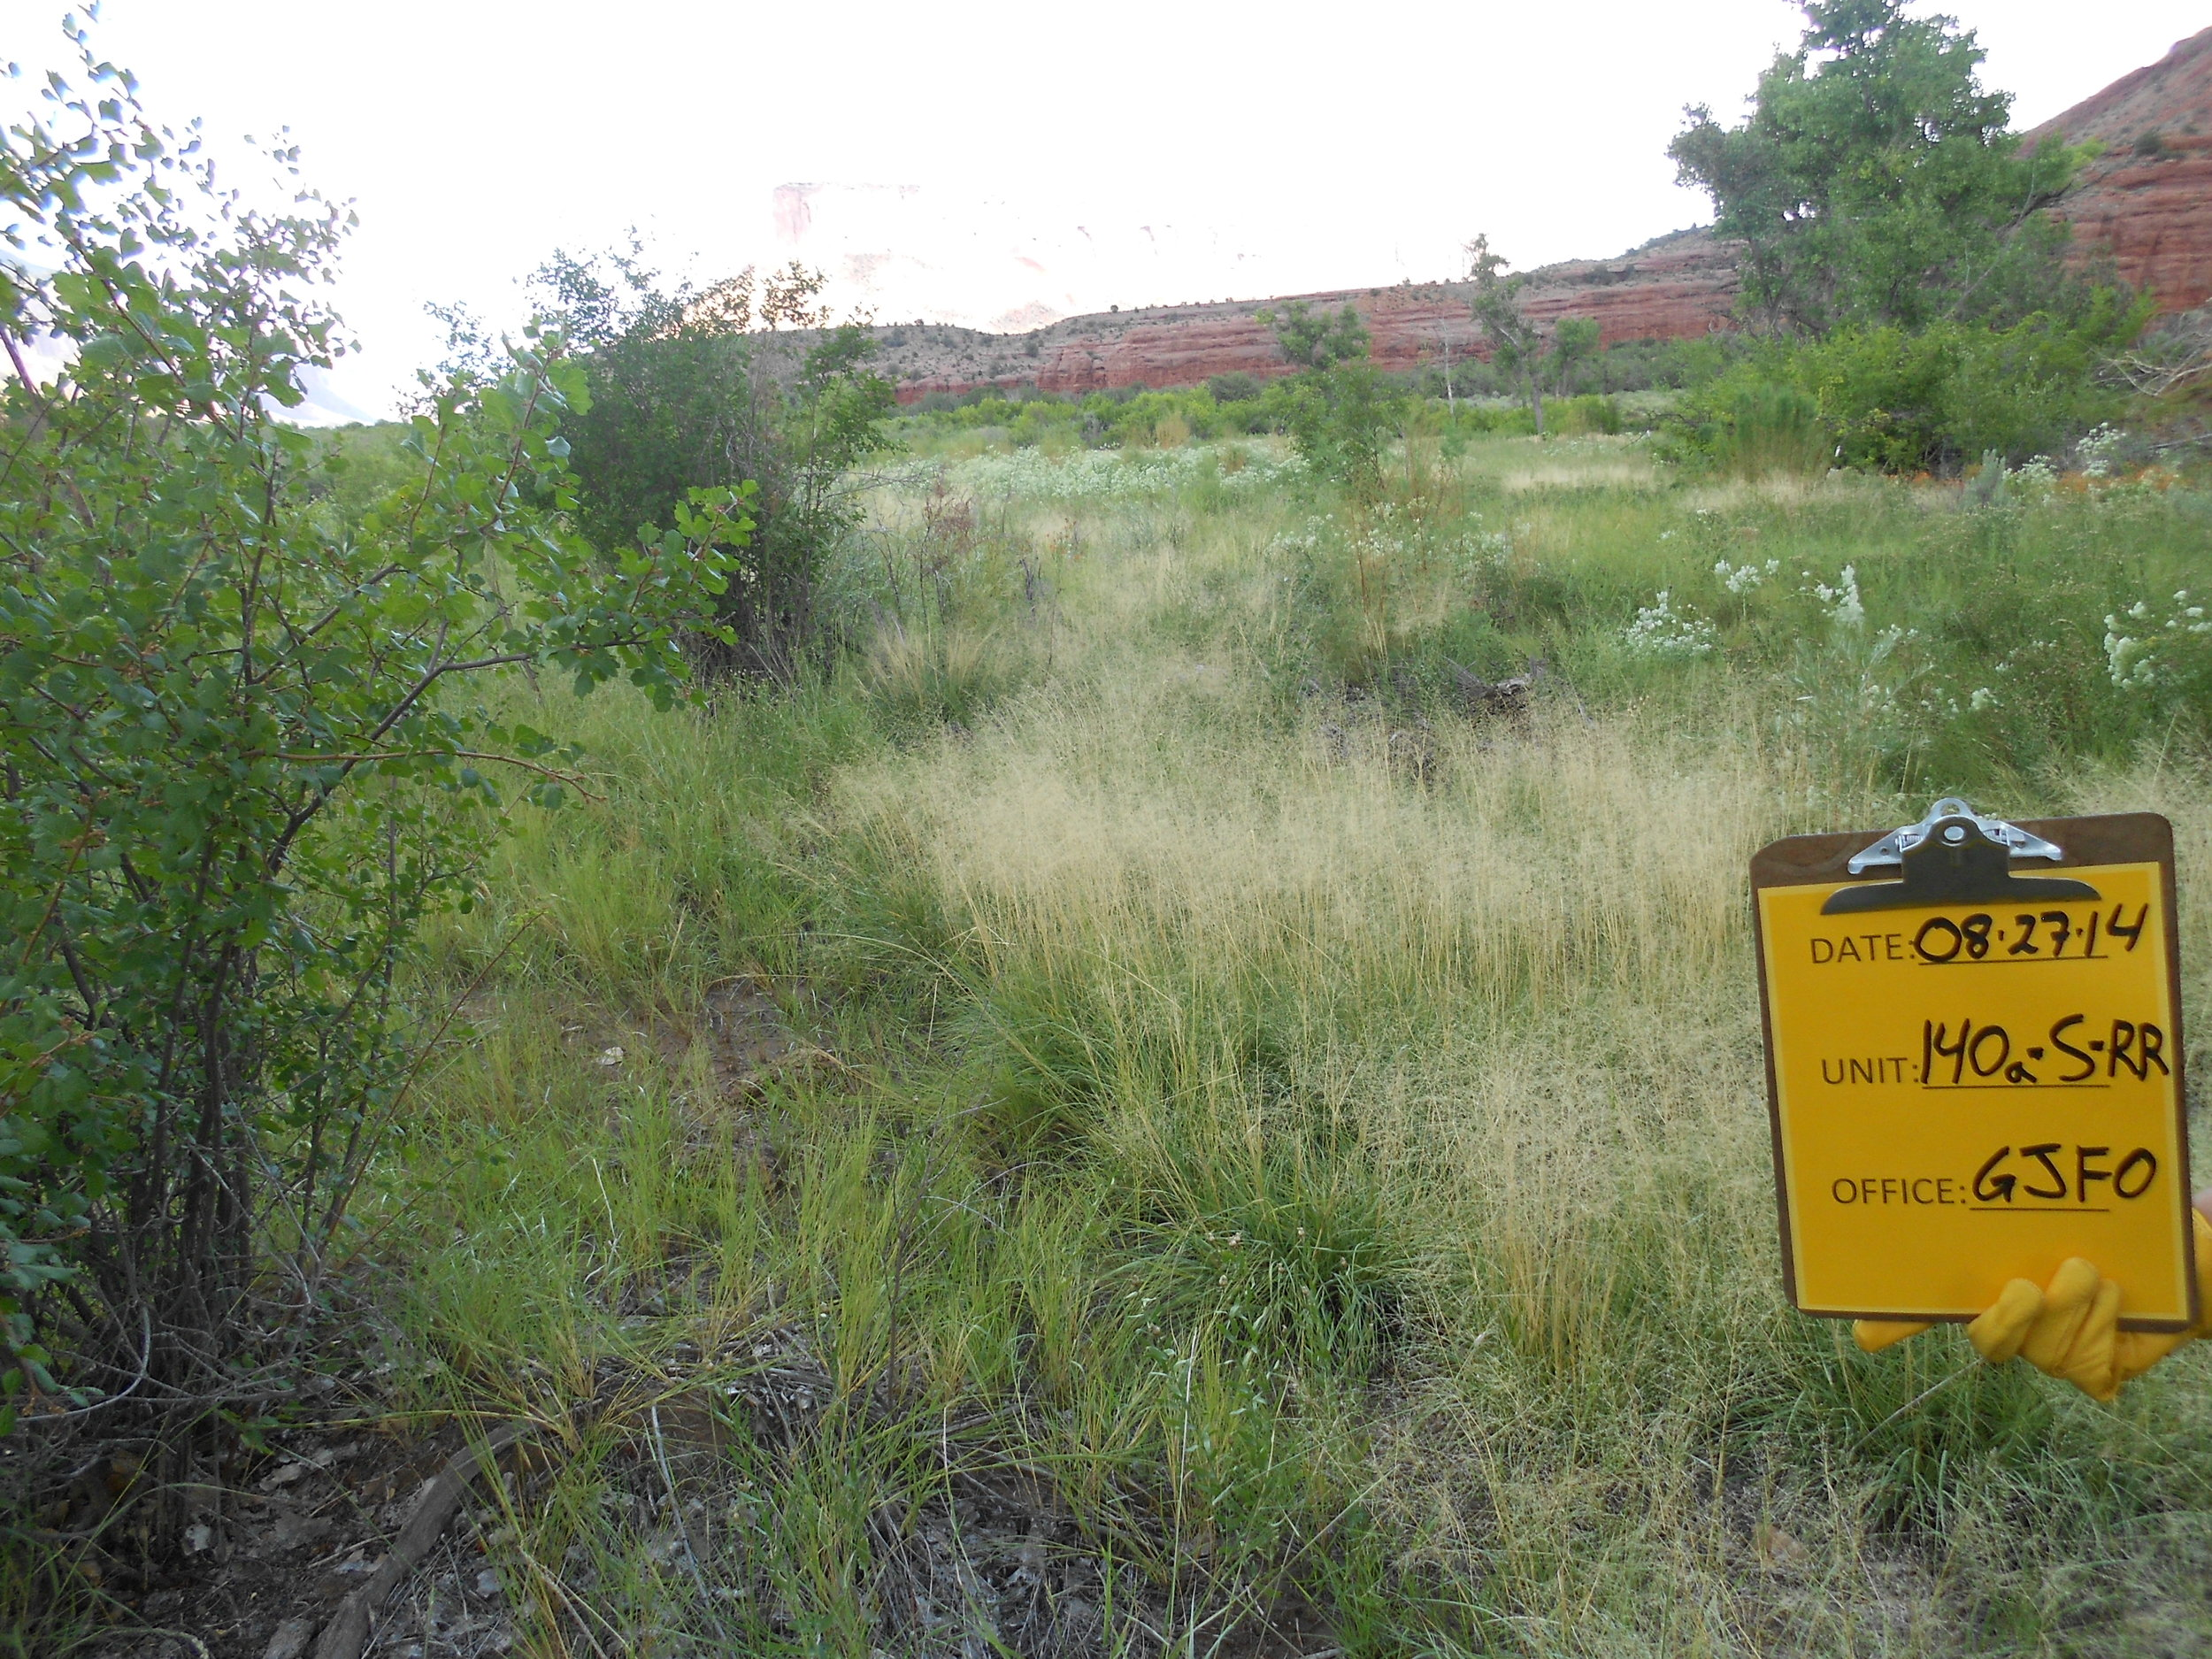 ... and following removal and regeneration of desirable native vegetation.